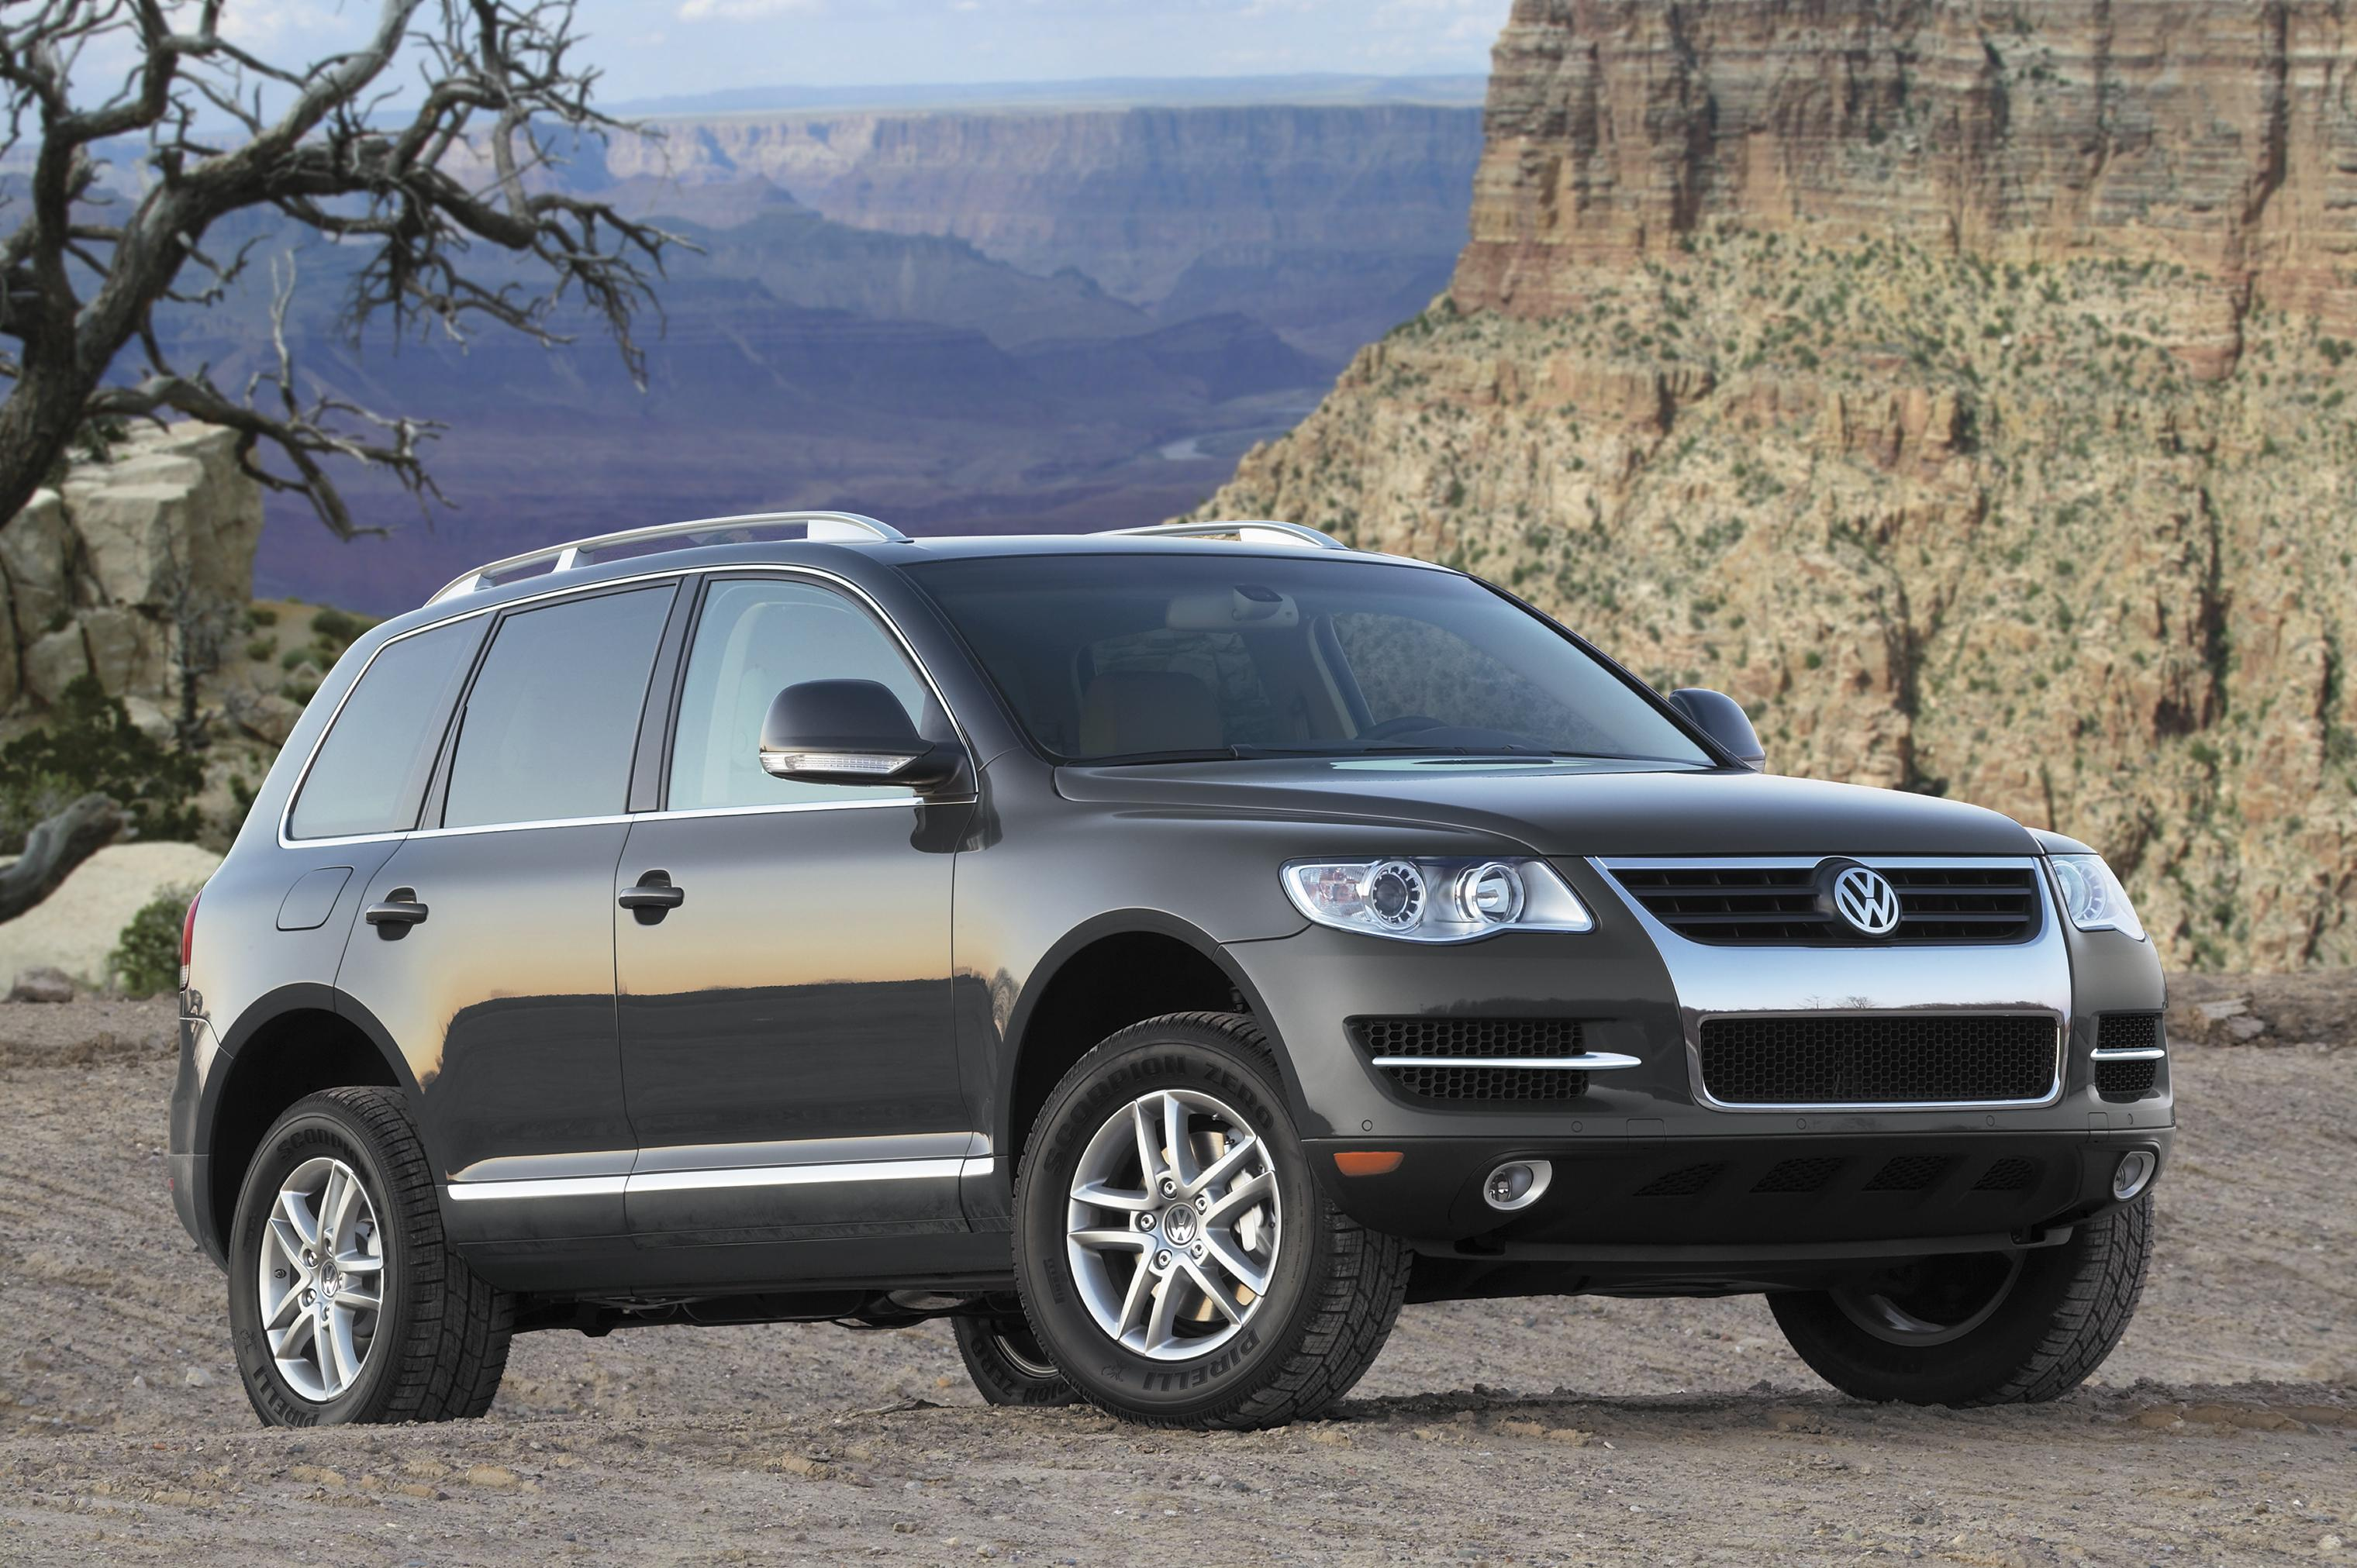 Luxury Suv: Top 10 Luxury SUVs For Off-Roading